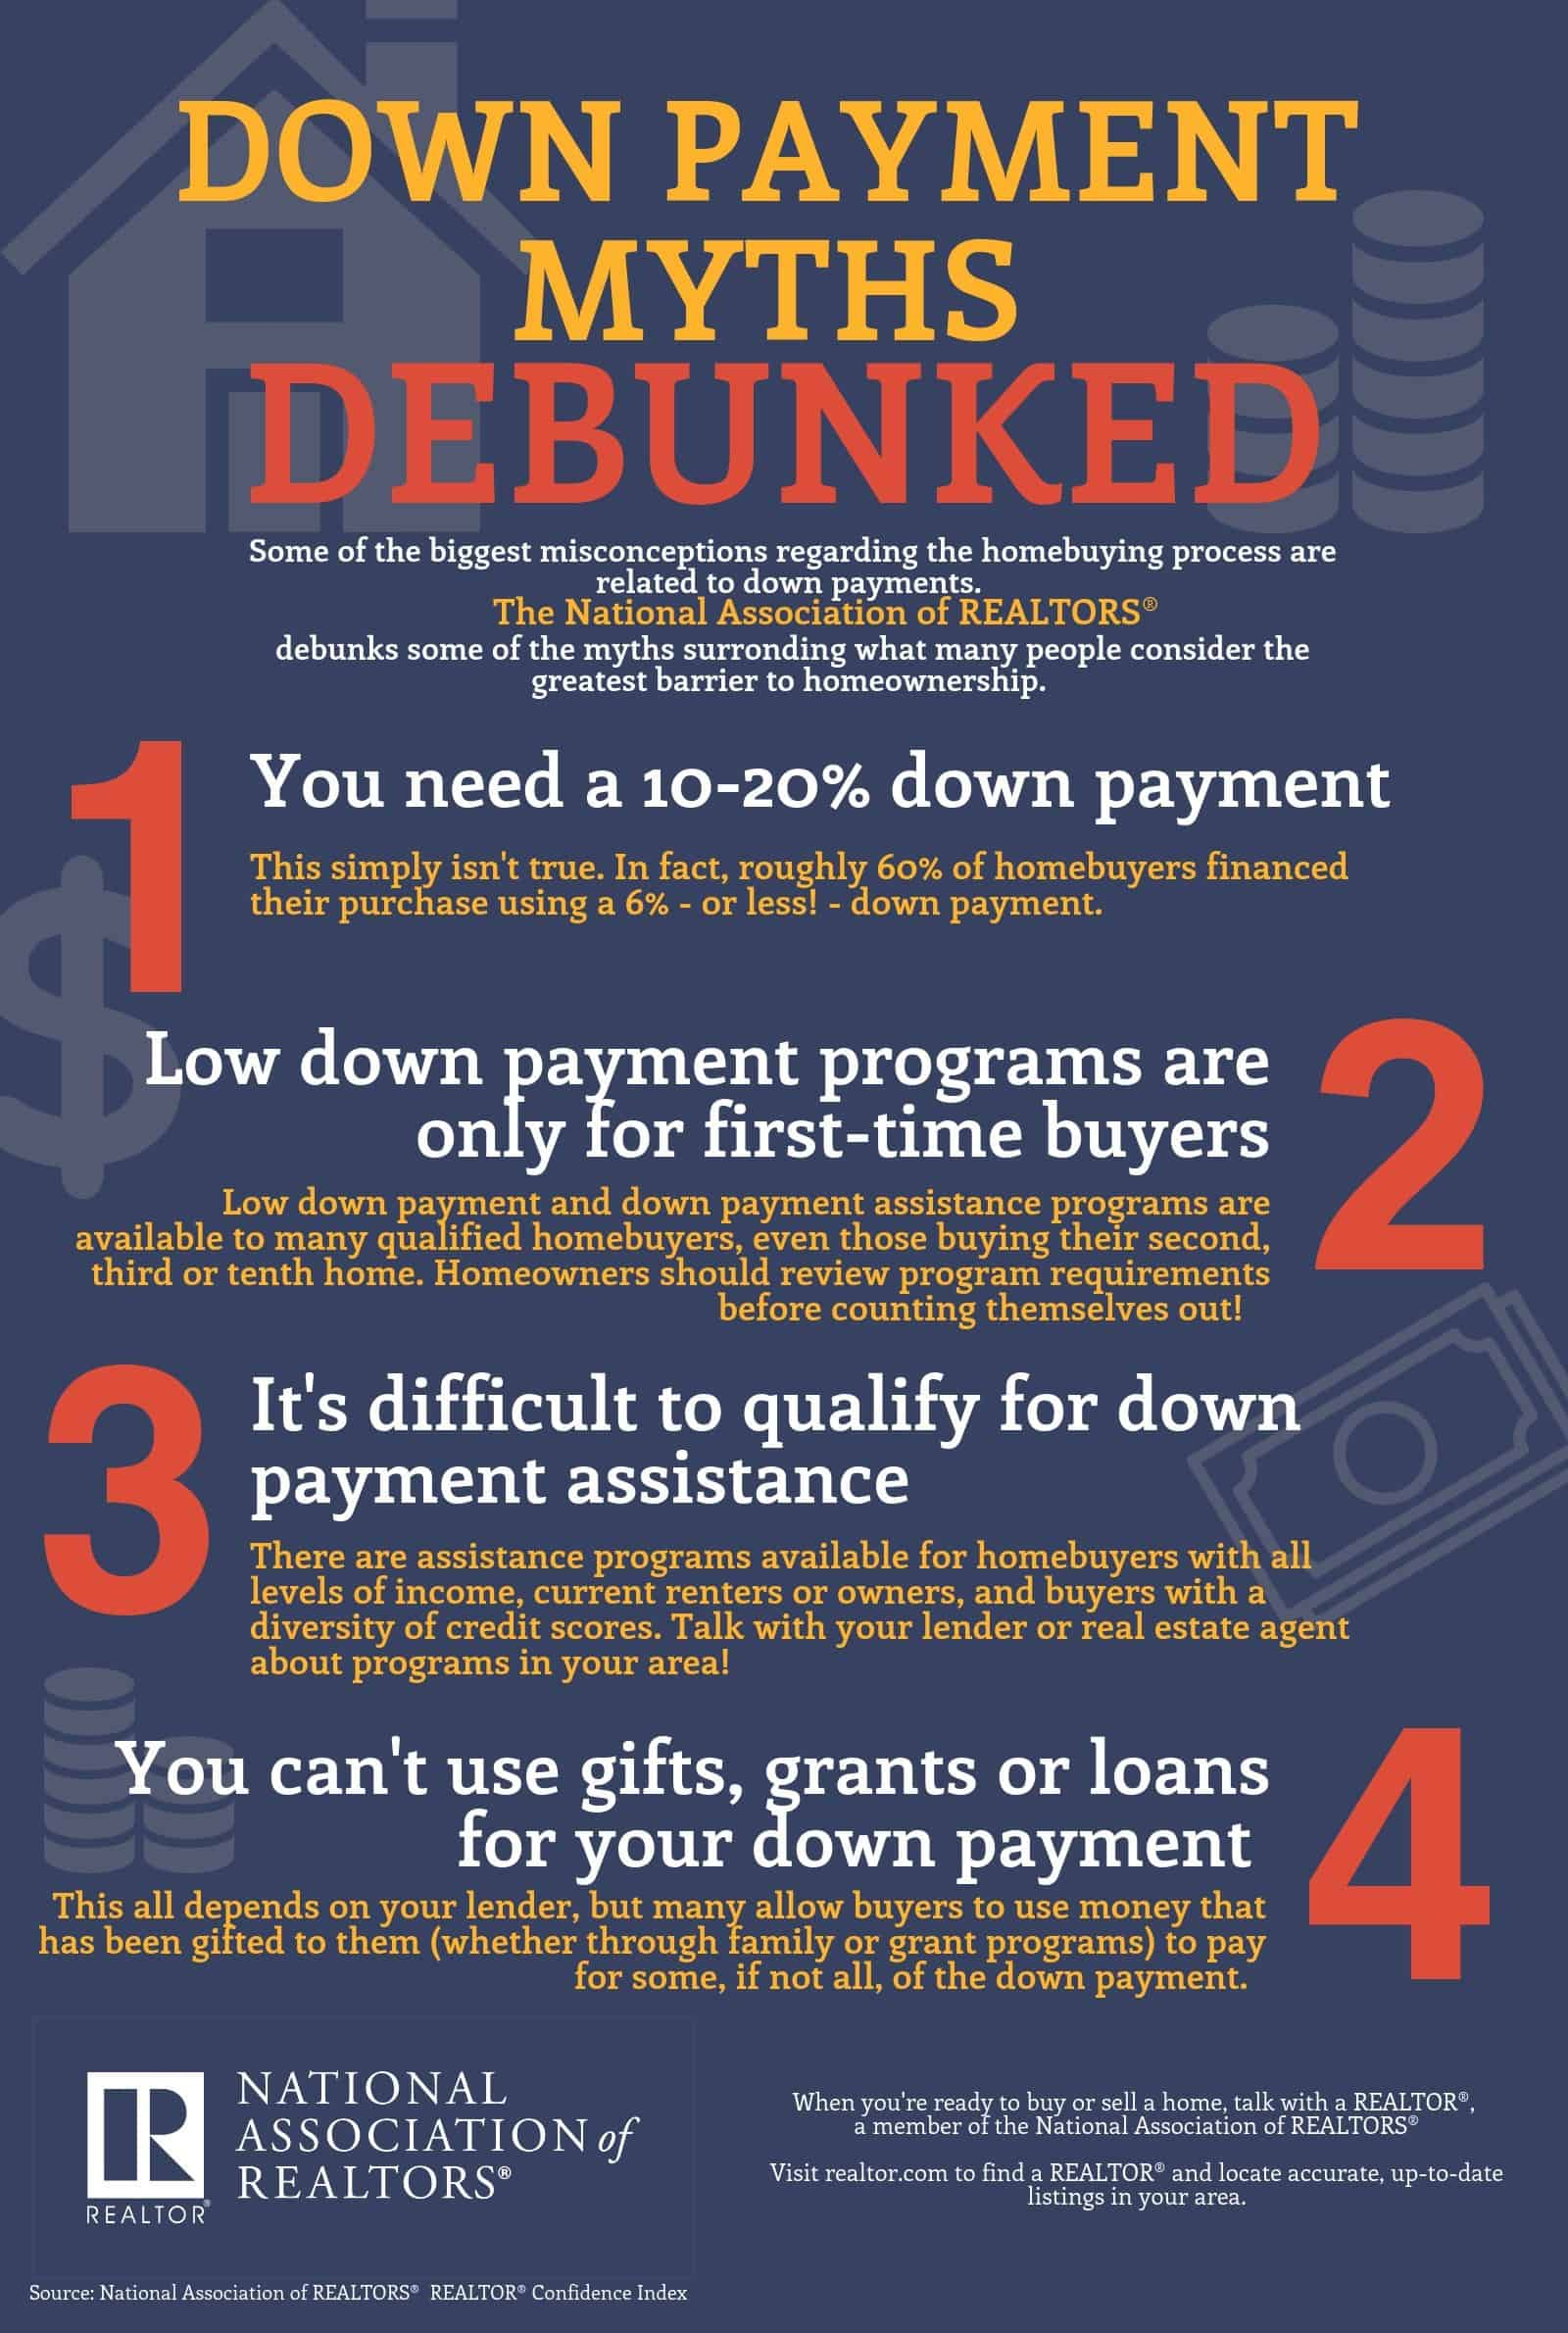 Image of Down Payment Myths Debunked: 4 Common Myths